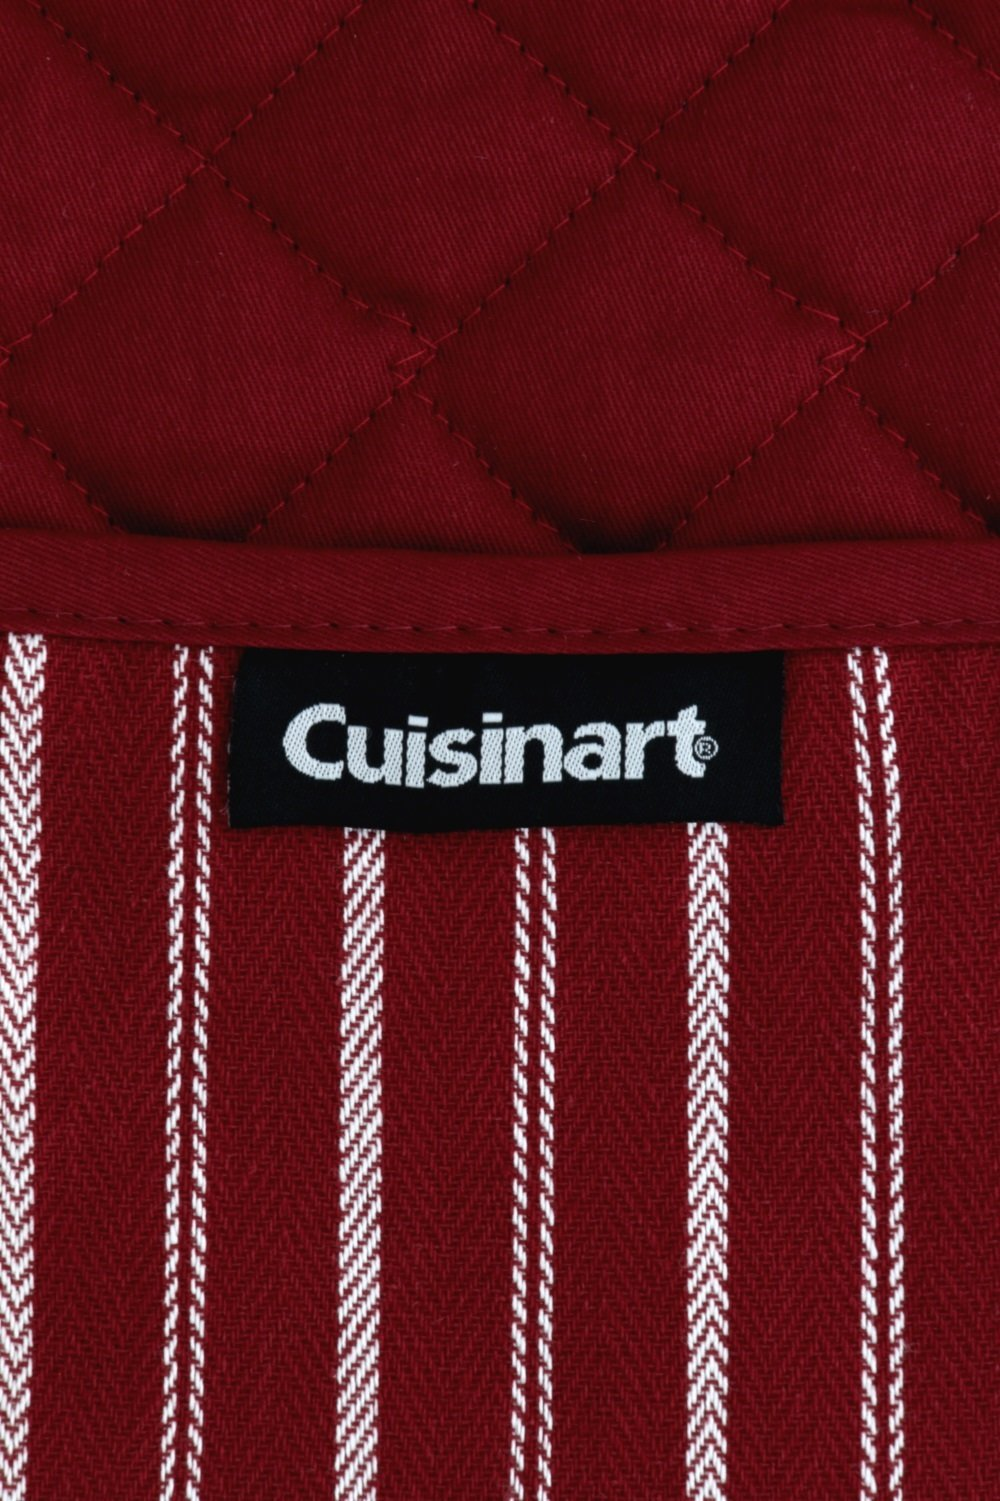 """Cuisinart Double Oven Mitt Glove/Moppine, Quilted Heat Resistant Kitchen Accessory, Twill Stripe, 35"""" x 7.5"""", Great for Cooking, Baking, and Handling Hot Pots & Pans- Red Dahlia by Cuisinart (Image #5)"""